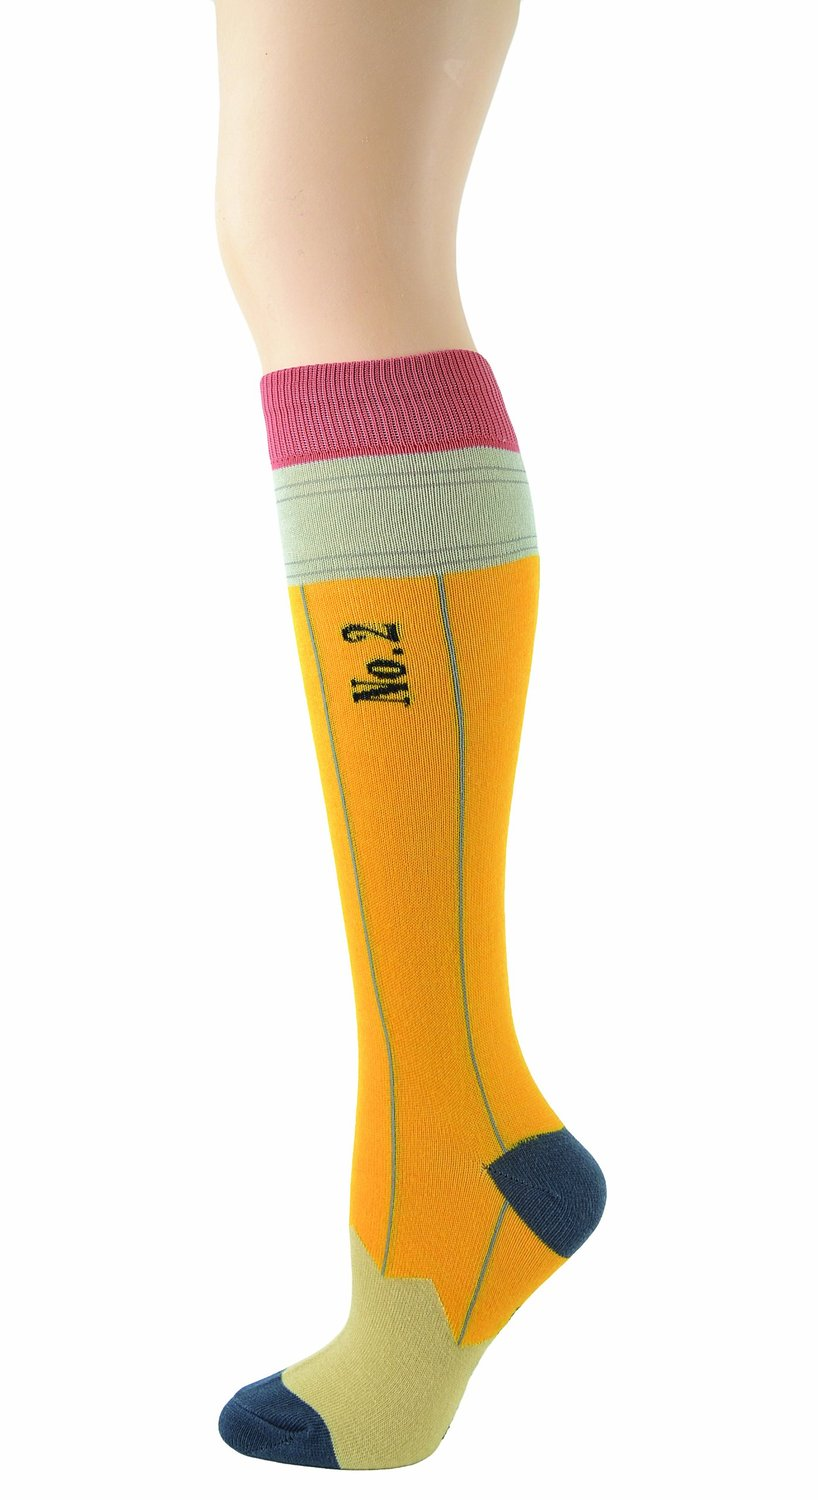 Amazon.com: Foot Traffic Women's Pencil Knee High Socks Size 9-11 Yellow/Black: Clothing